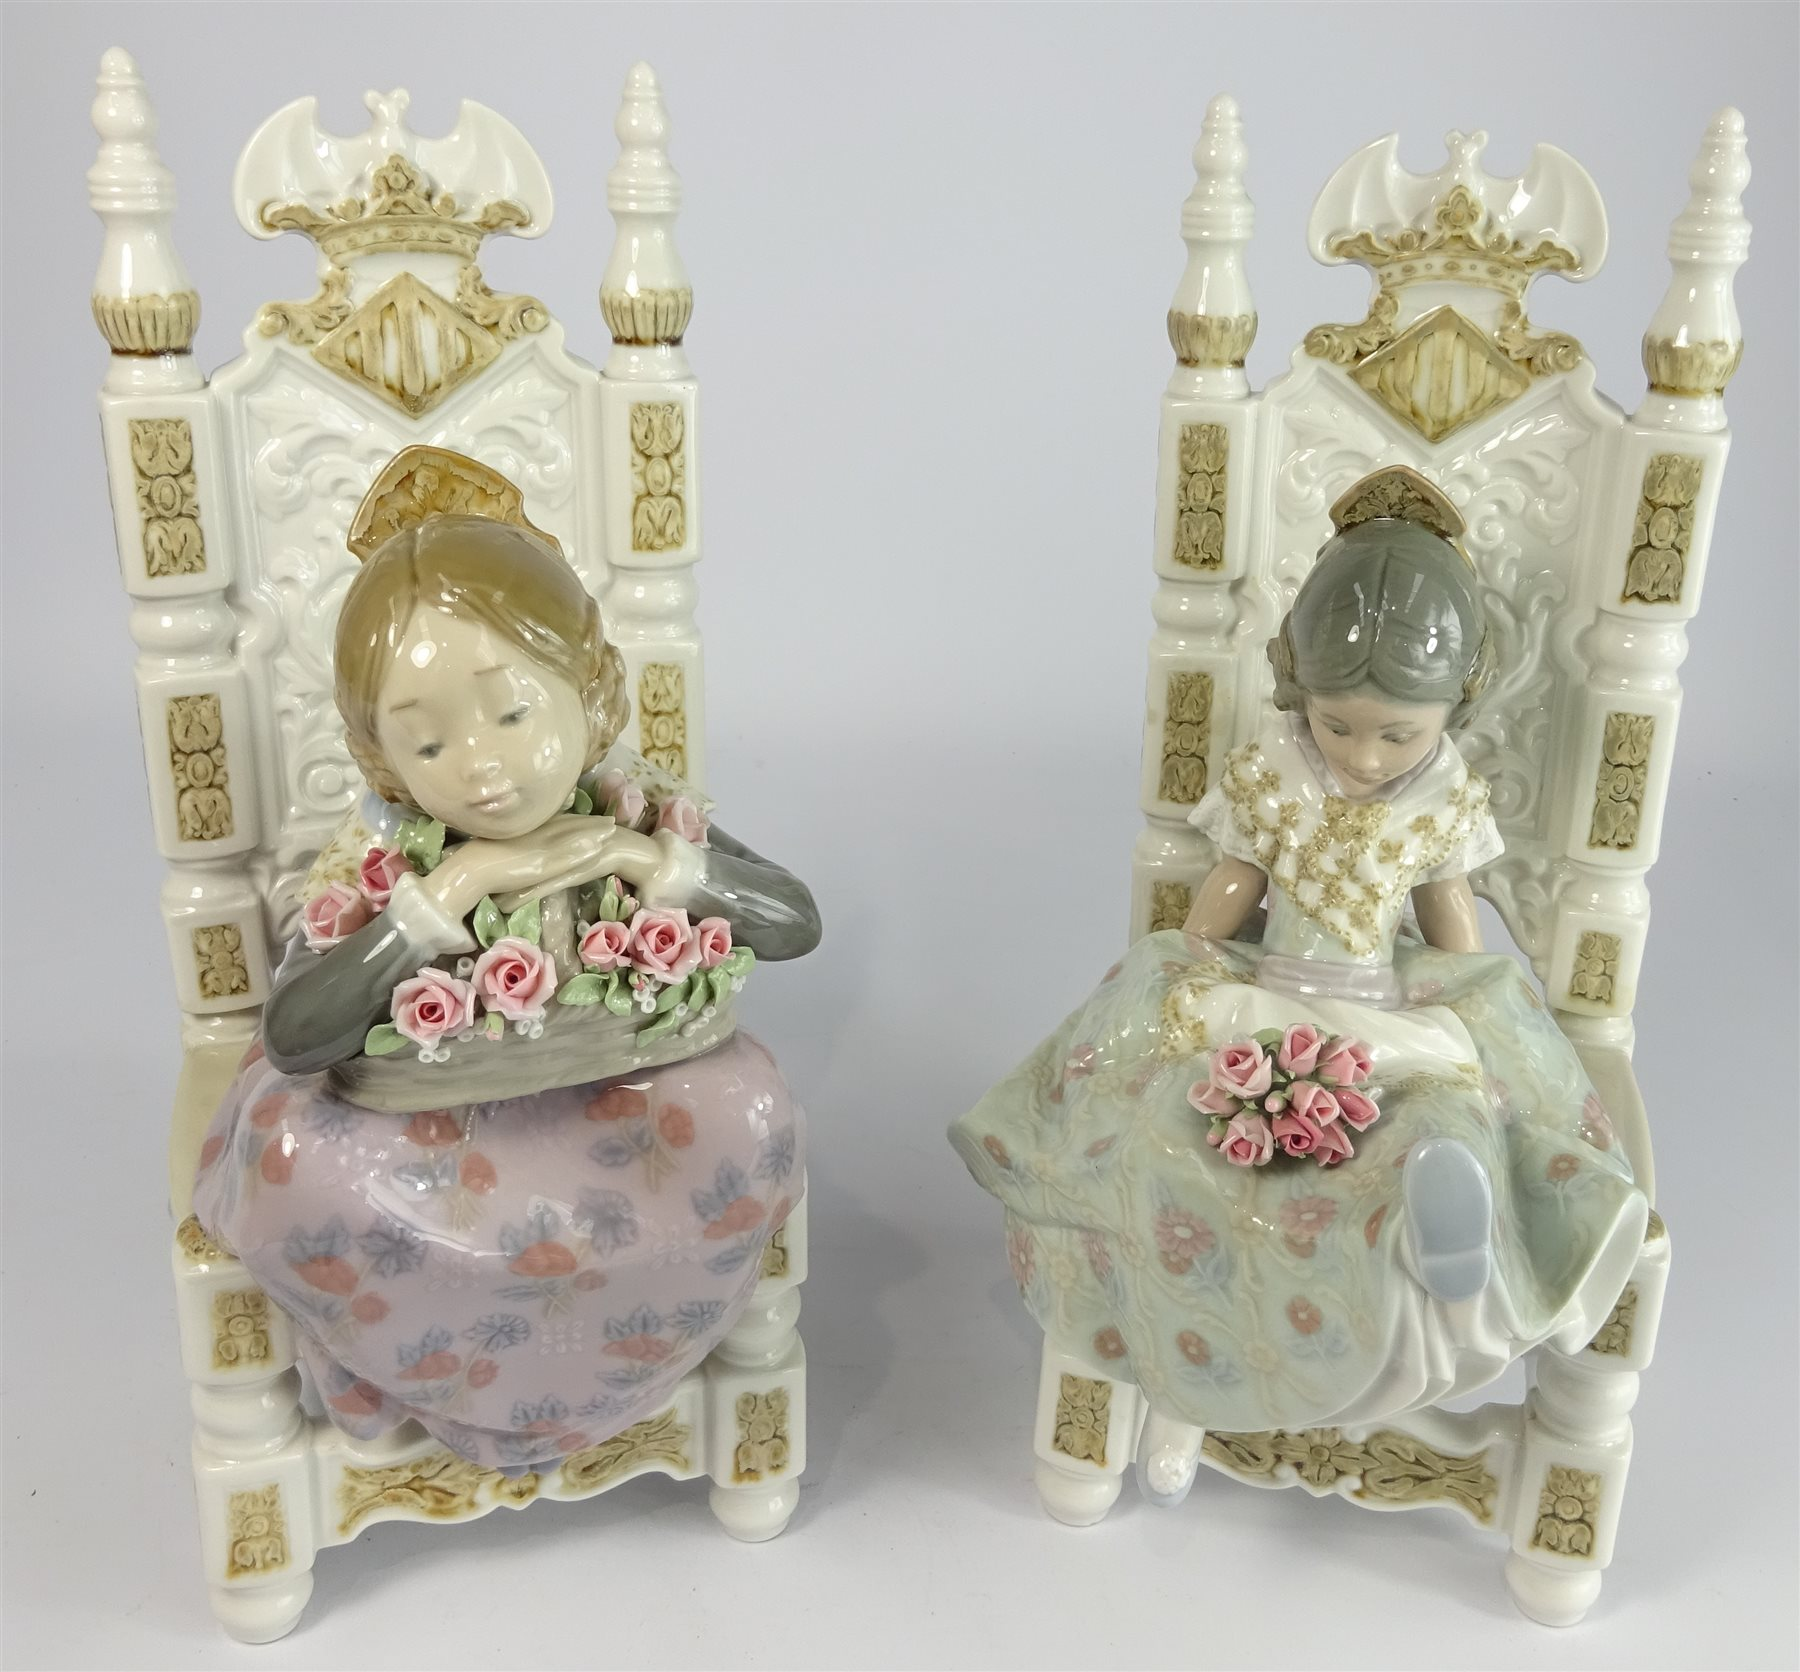 Another Pair Of Lladro Figures Of Girls Holding Flowers Seated In Throne  Like Chairs 27cm High ...